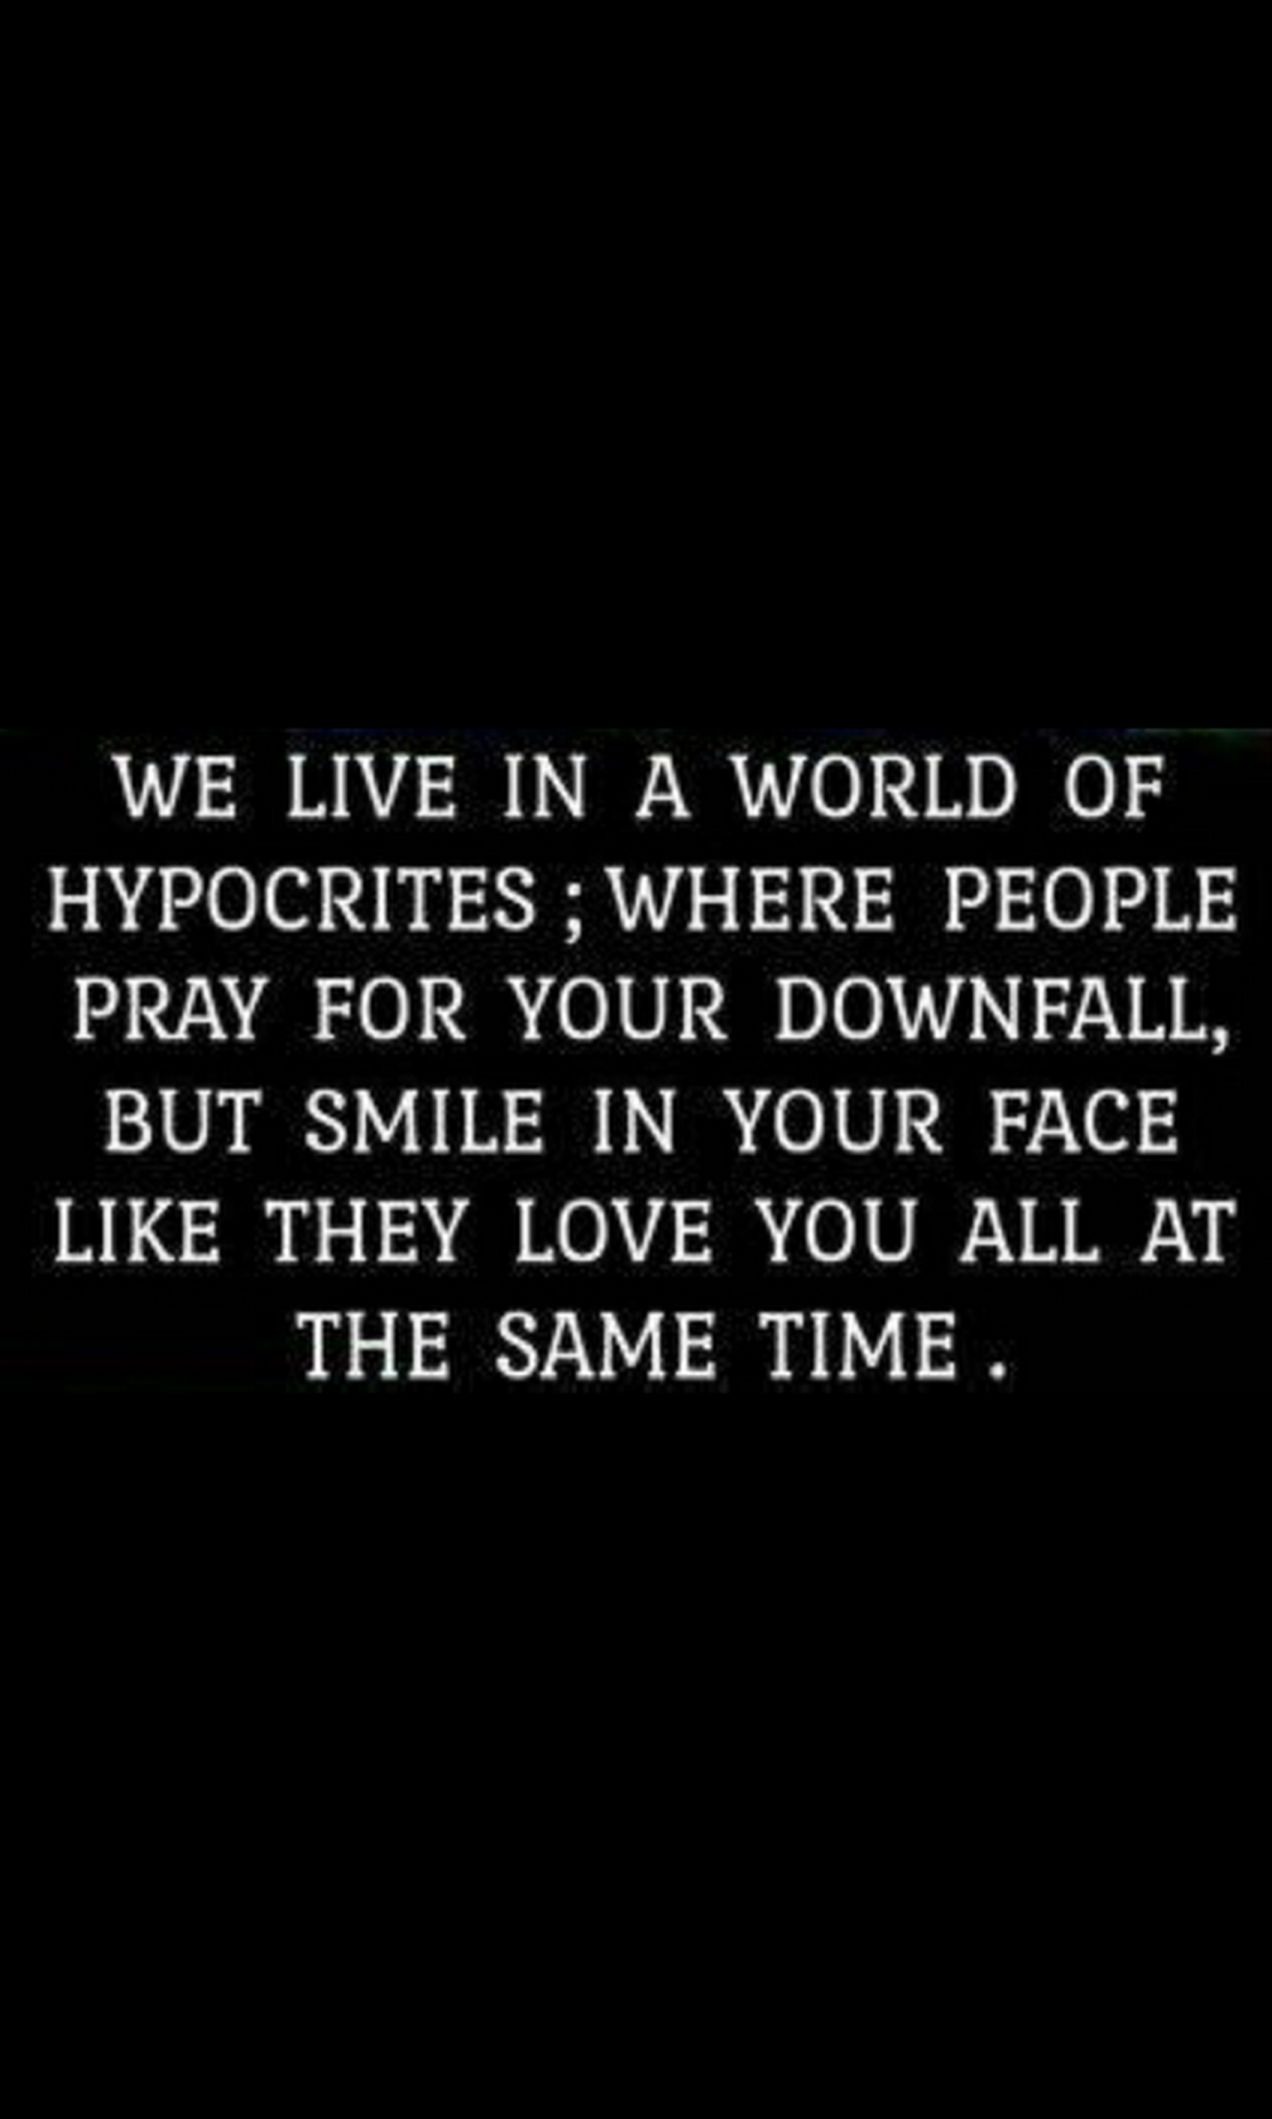 17 Hypocrite Friendship Quotes Friendship Quotes Hypocrite Quotes Quotes About Love And Relationships